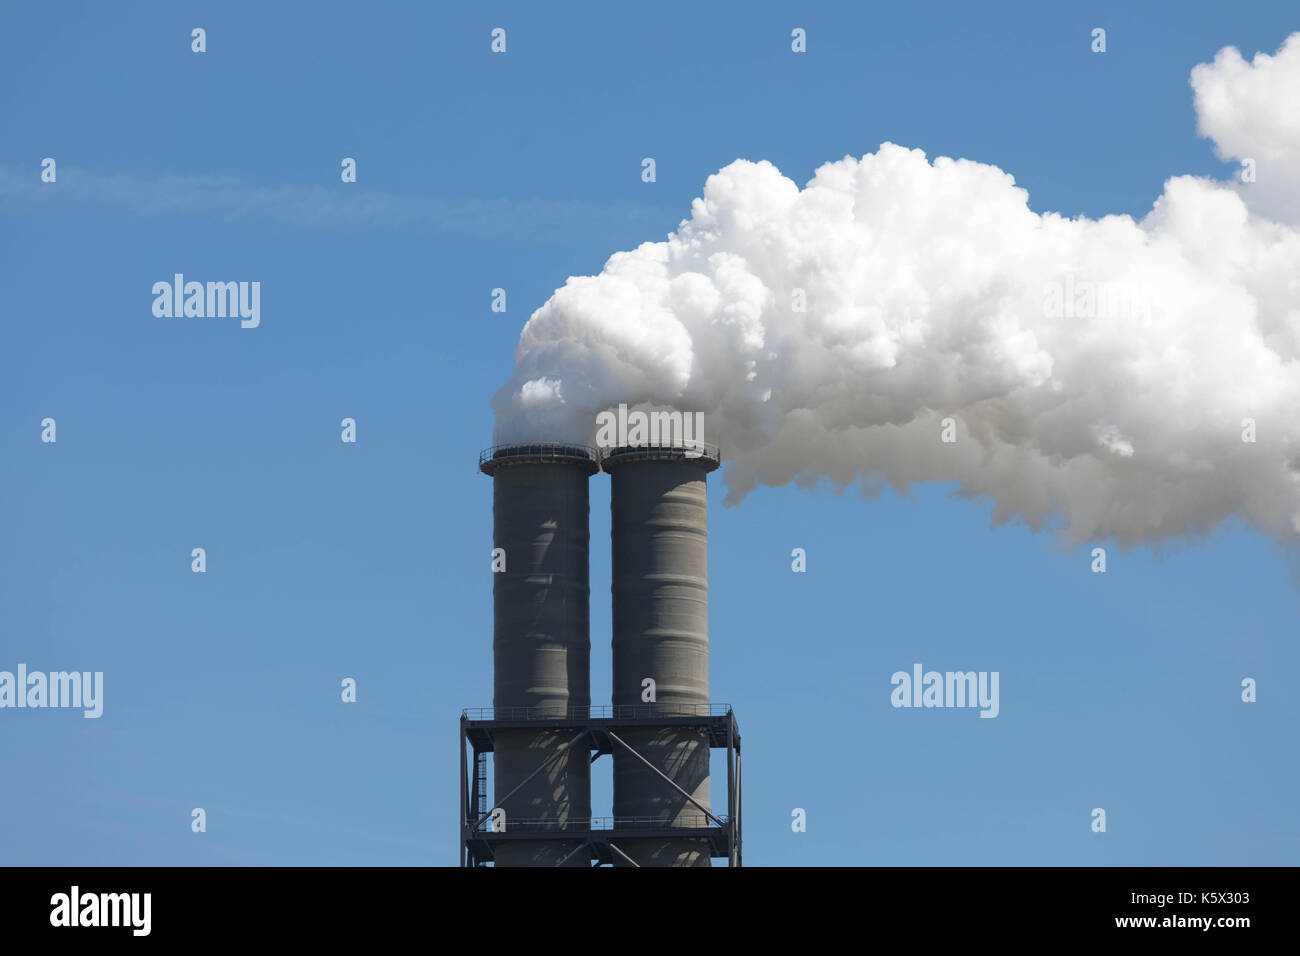 White Smoking industrial Chimney in front of a blue sky - Stock Image